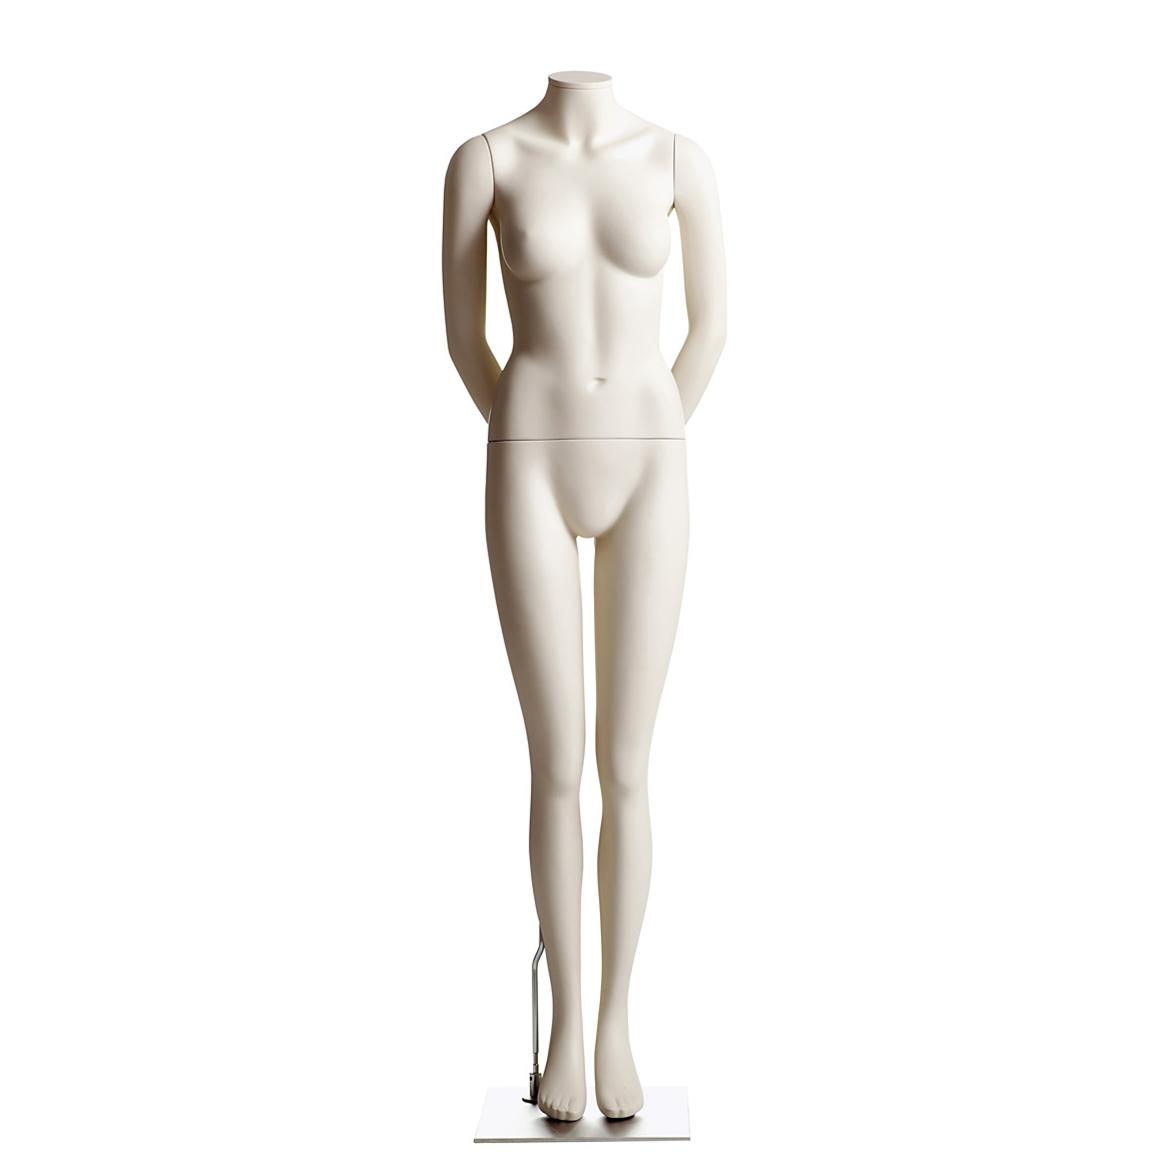 Female Headless Mannequin- Arms Behind Back, Legs Together